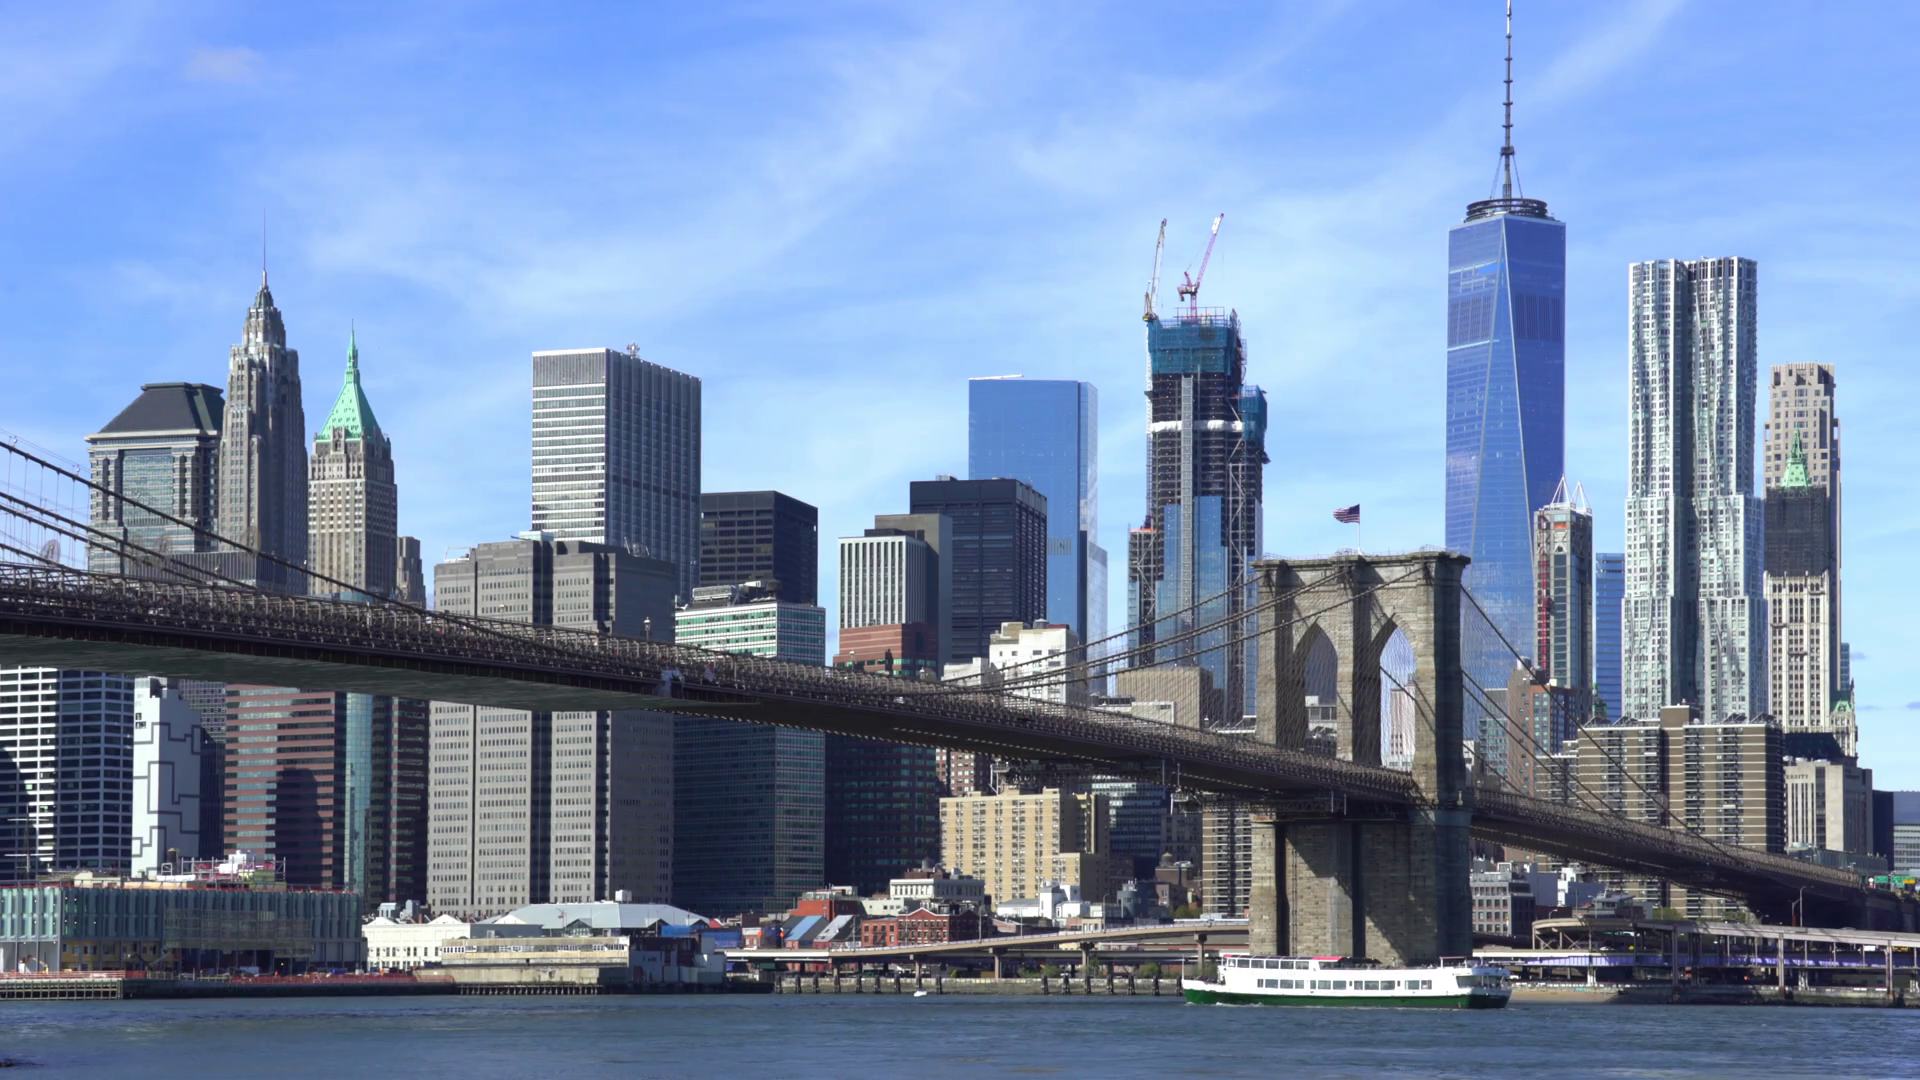 brooklyn-bridge-with-manhattan-skylines-new-york-city